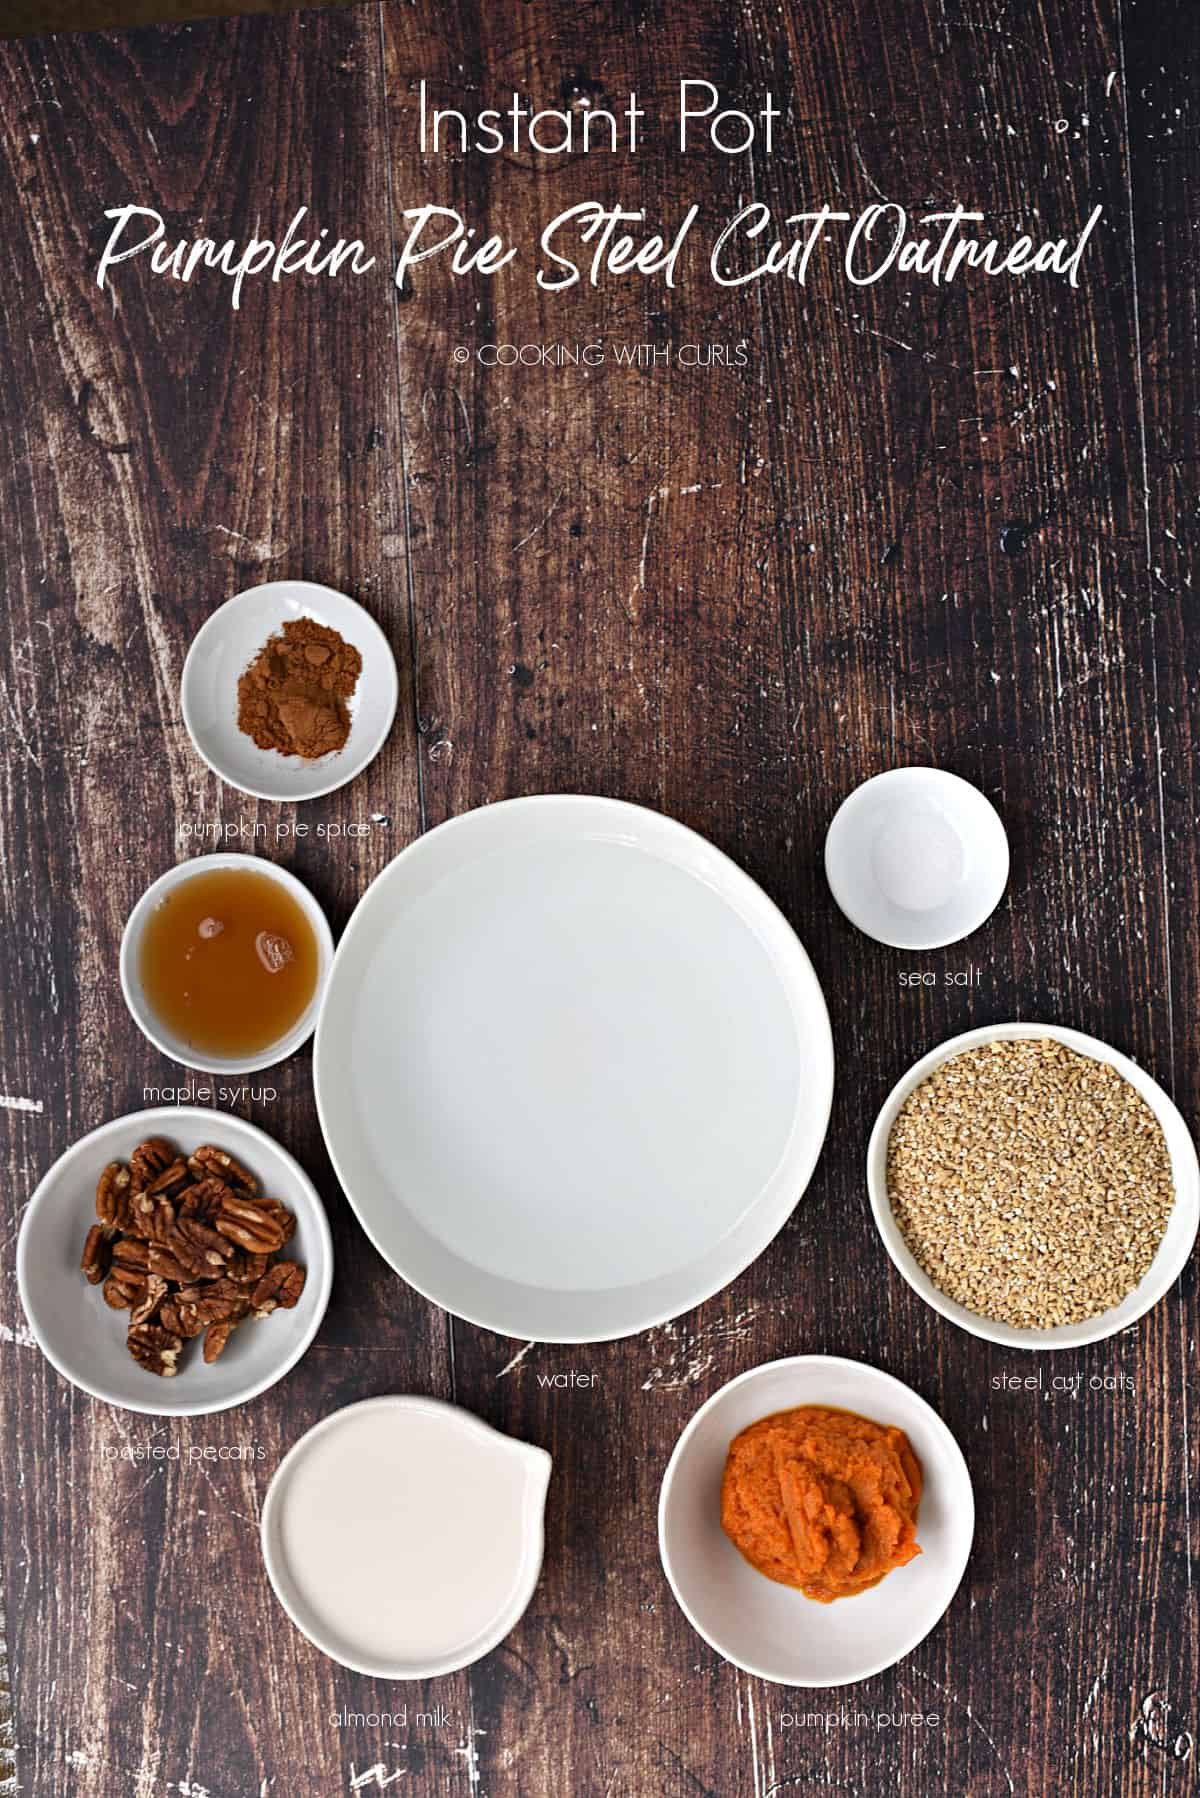 Looking down on white bowls with pumpkin pie spice, maple syrup, pecans, almond milk, pumpkin puree, steel cut oats, sea salt and water sitting on a wooden background.